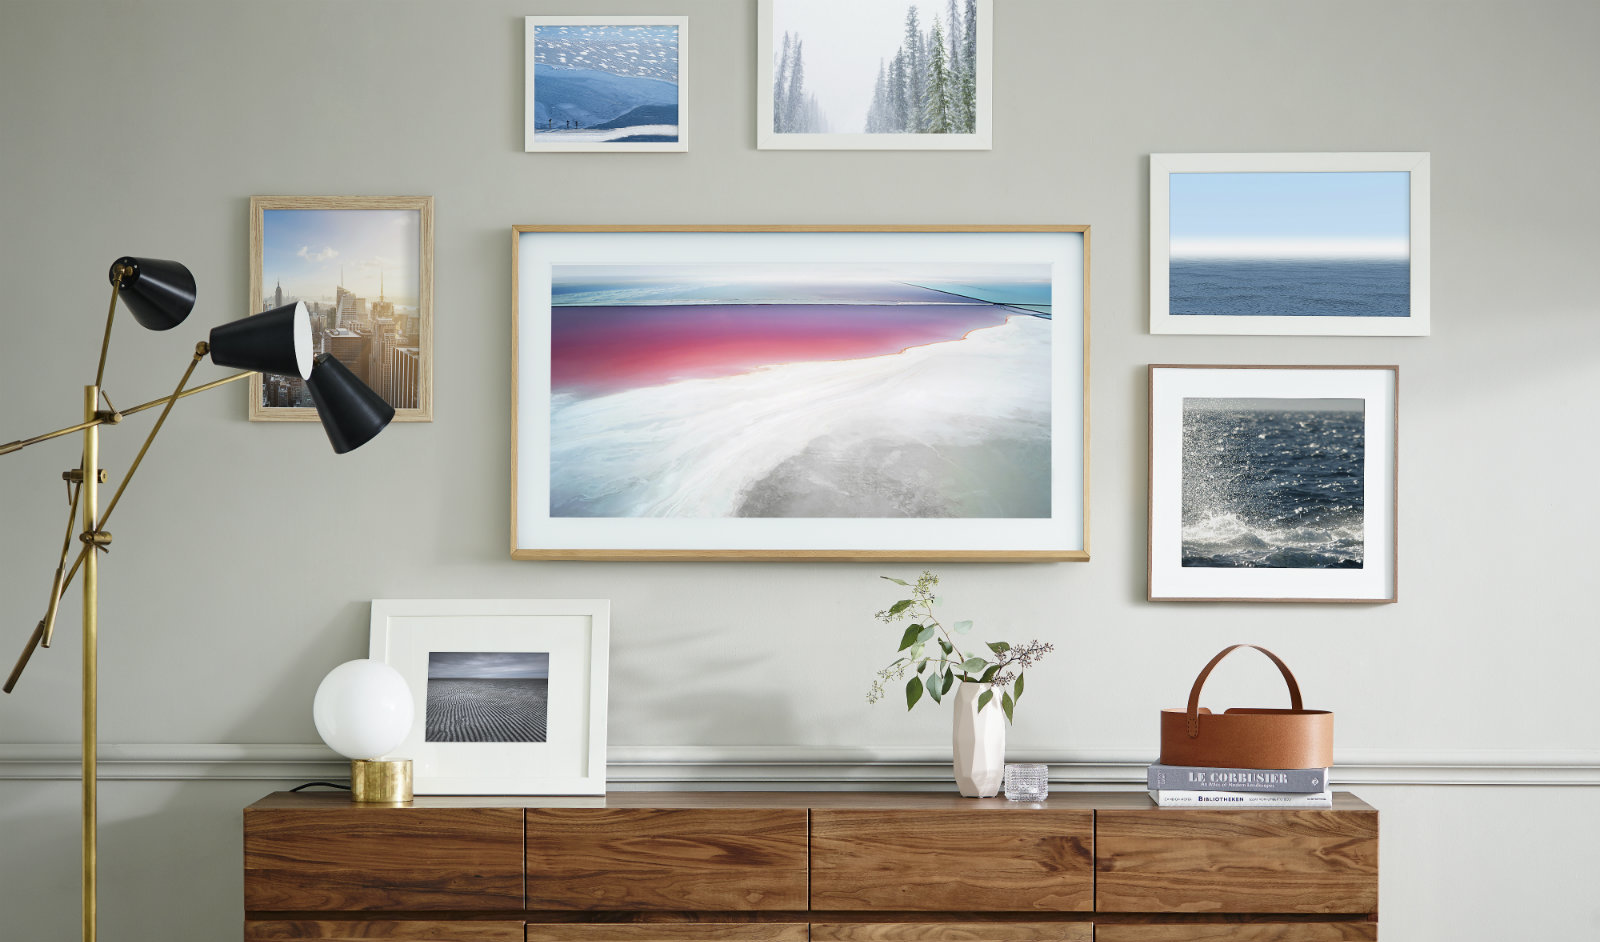 Samsung the frame tv hideaki matsui samsung the frame tv jeuxipadfo Choice Image